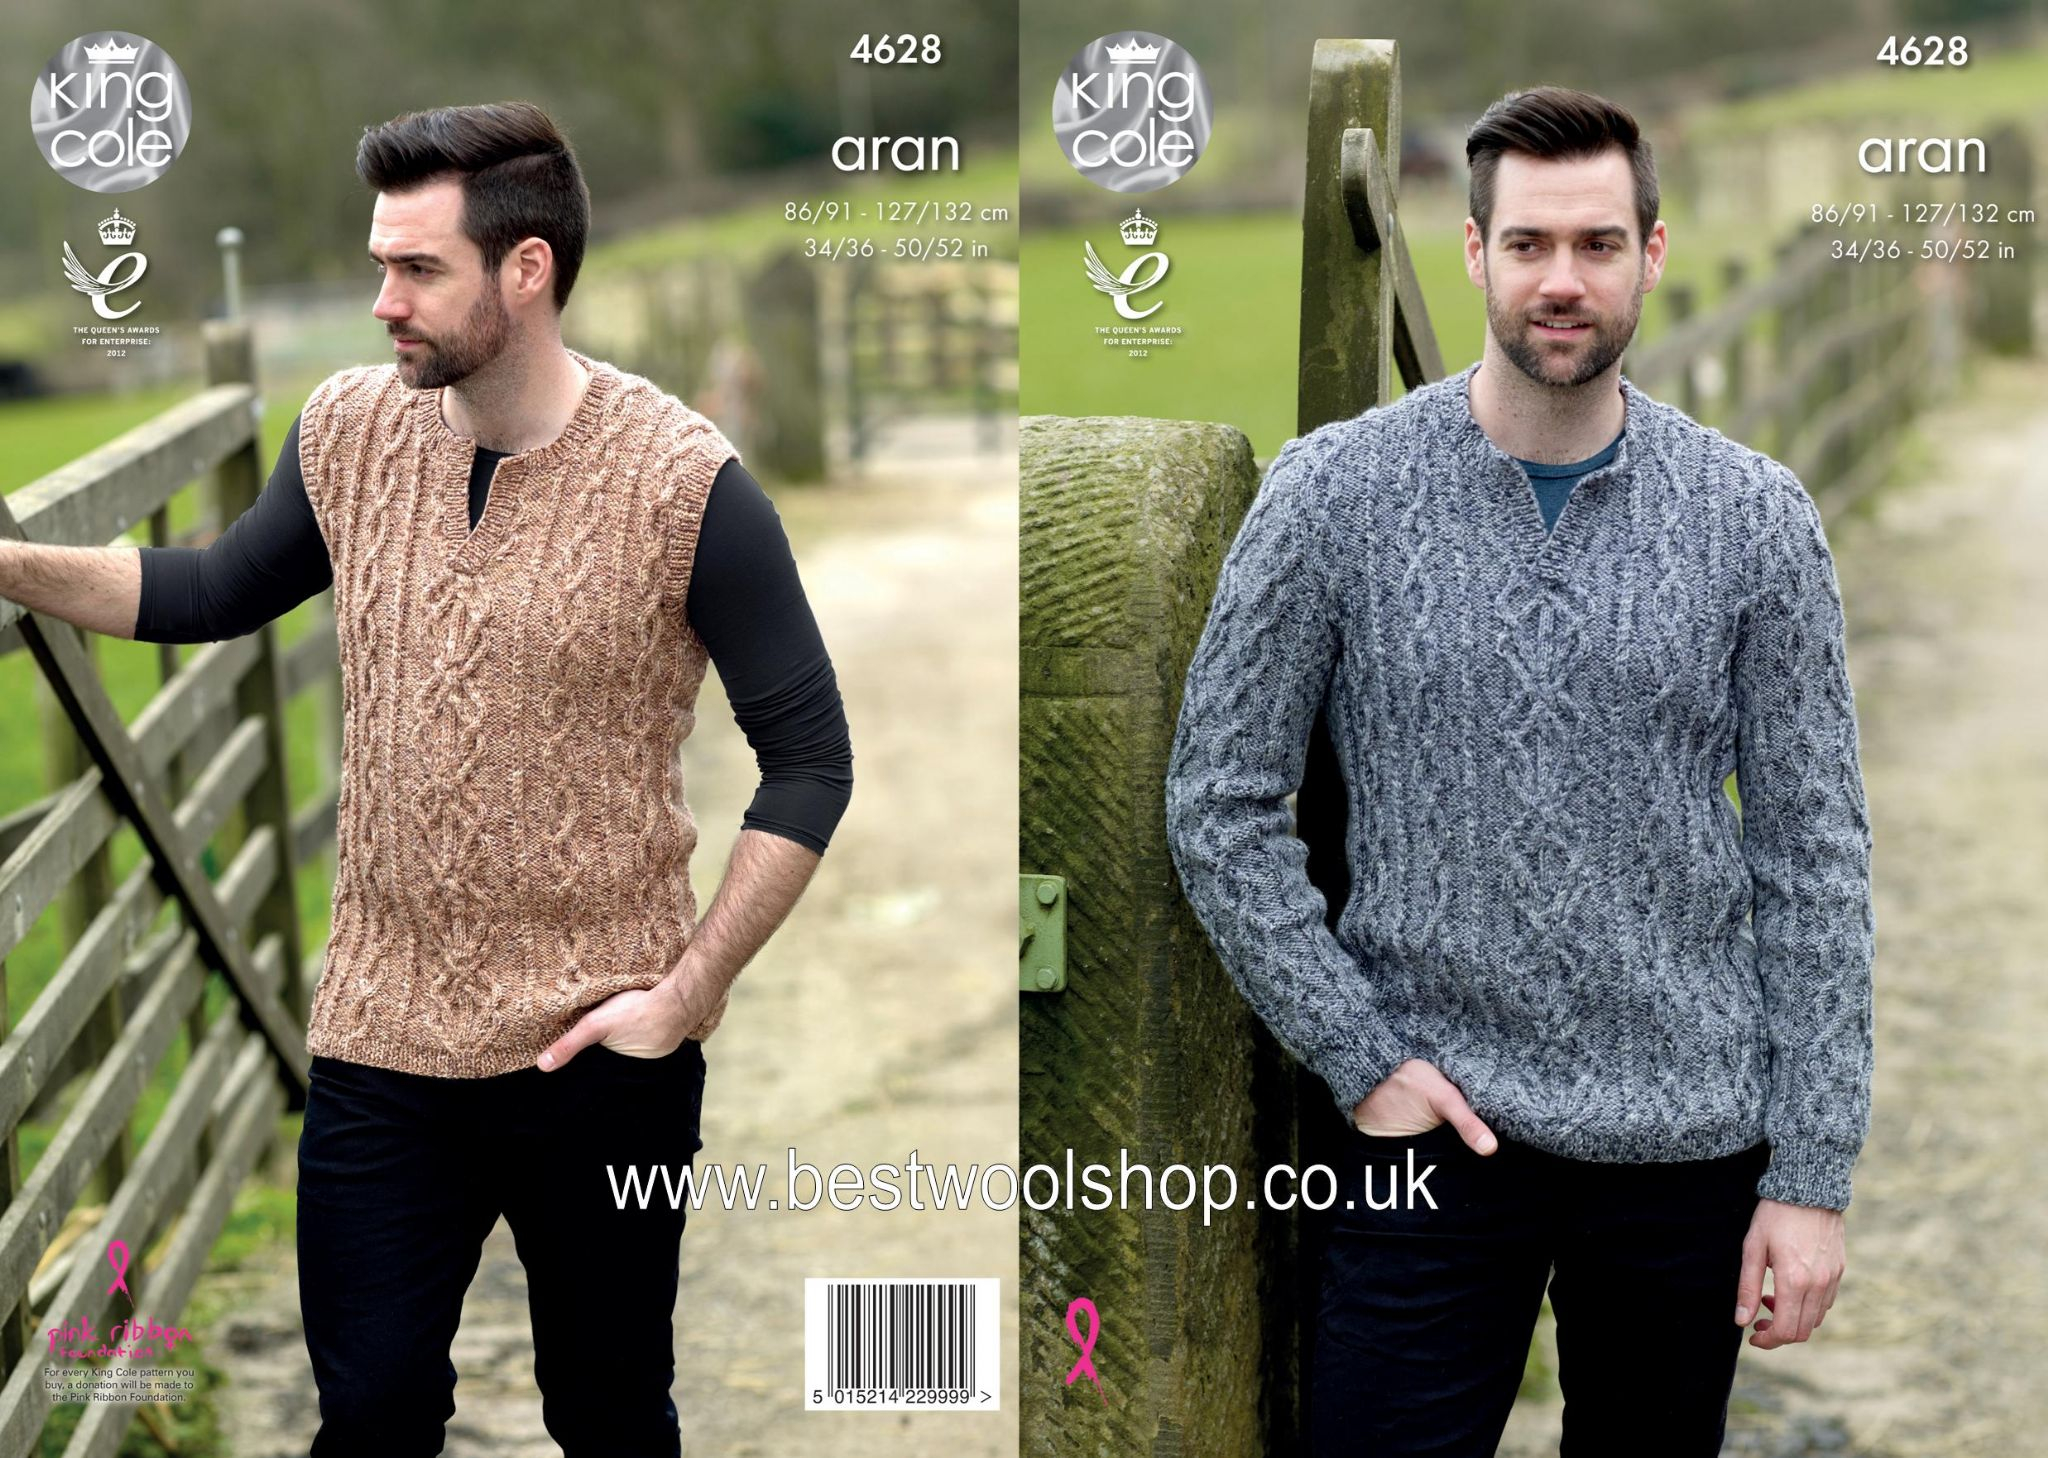 Knitted Tank Top Patterns 4628 King Cole Fashion Aran Combo Mens Cabled Open Front Sweater Sleeveless Sweater Tank Top Knitting Pattern To Fit Chest 34 To 52